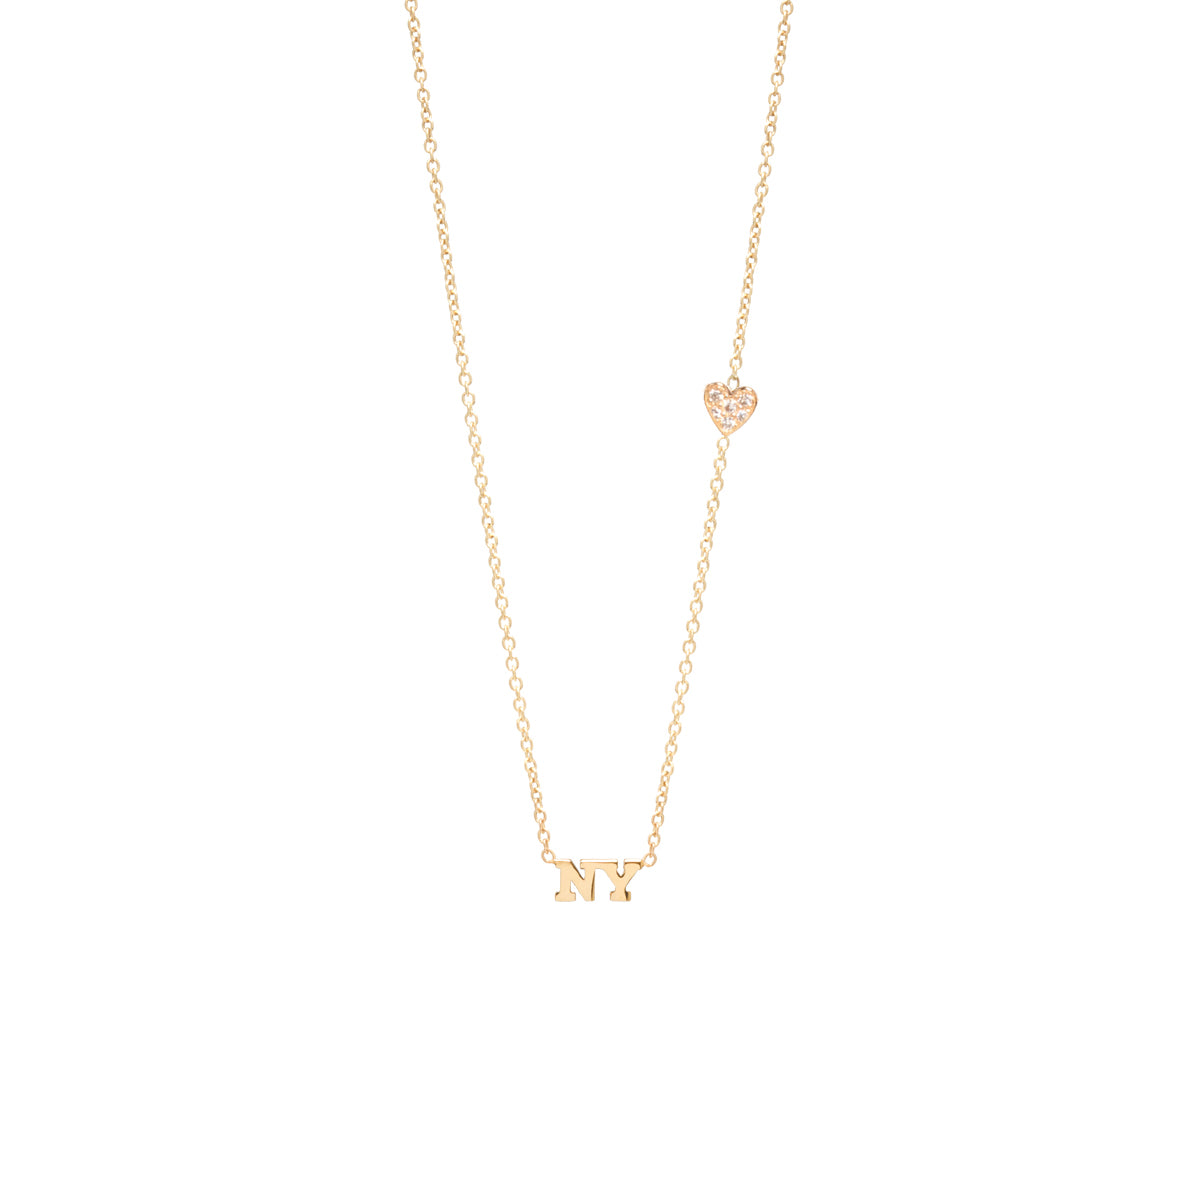 14k itty bitty NY necklace with floating heart